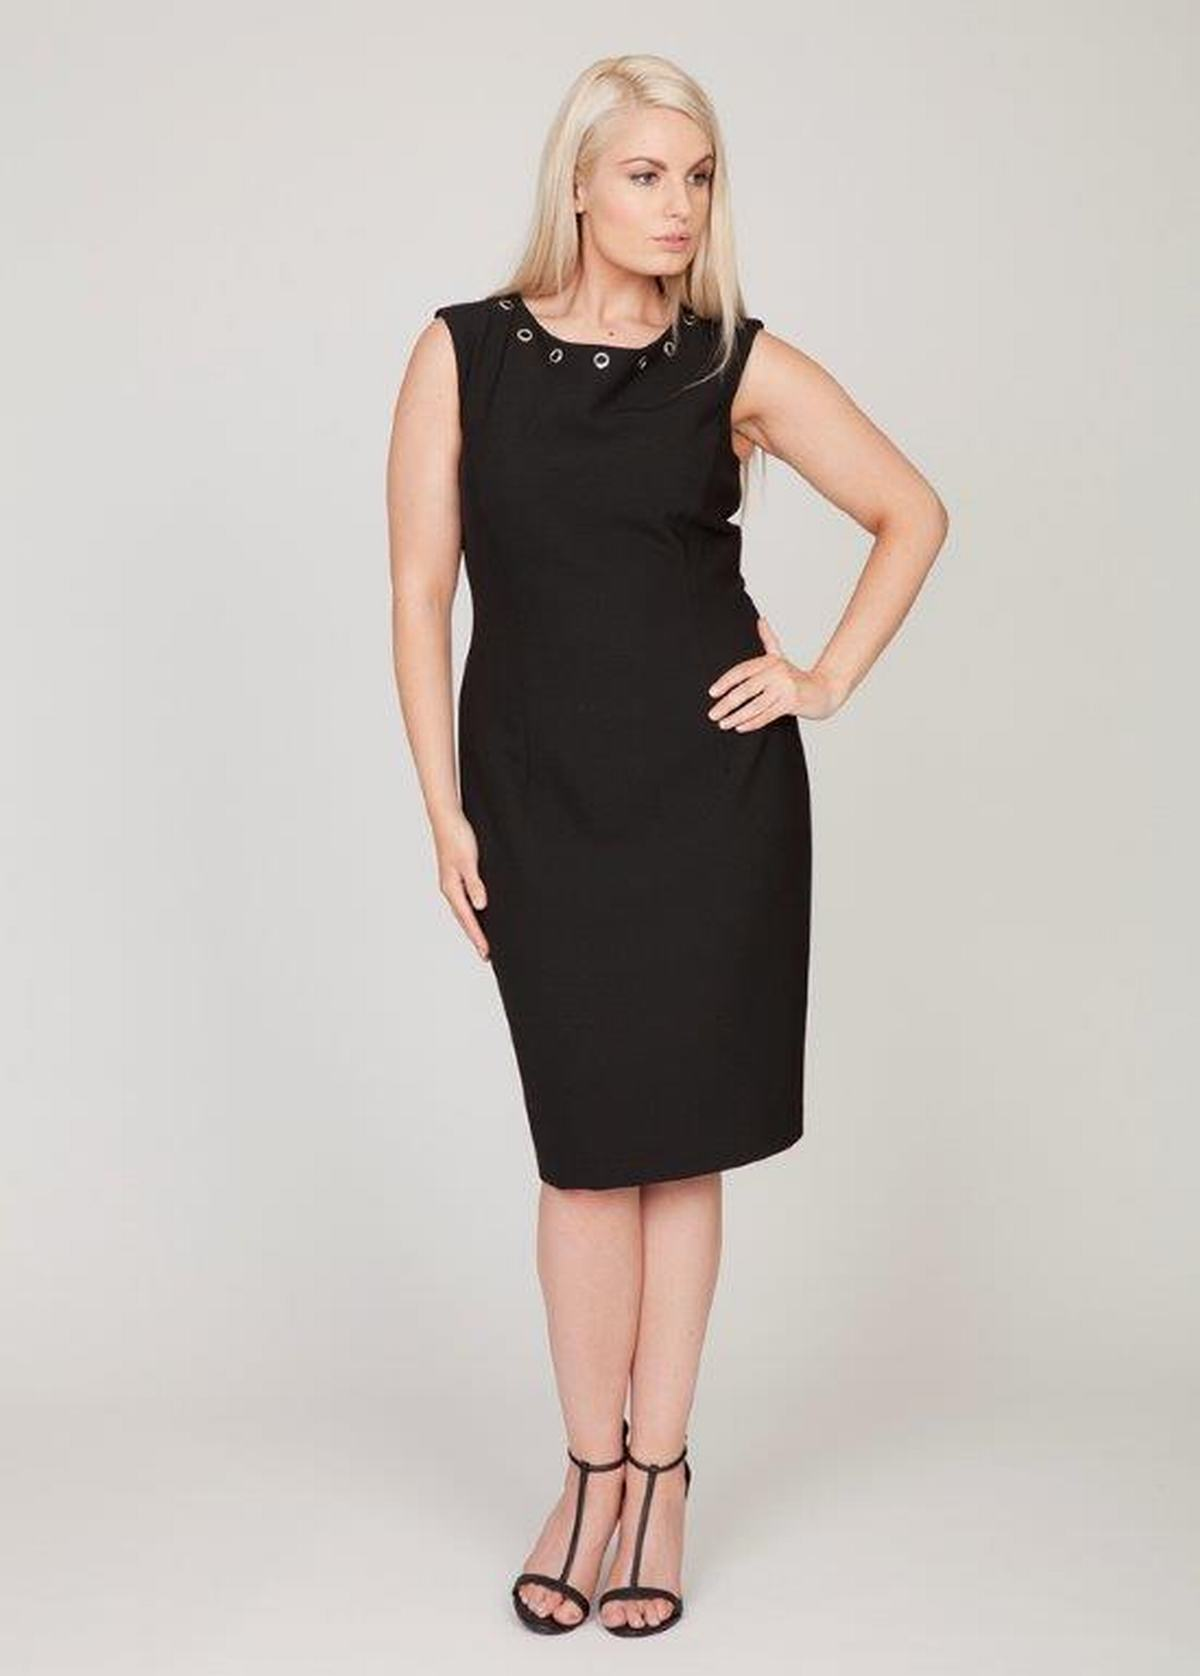 Black Personal Choice Black Eyelet Dress Plus Sizes In